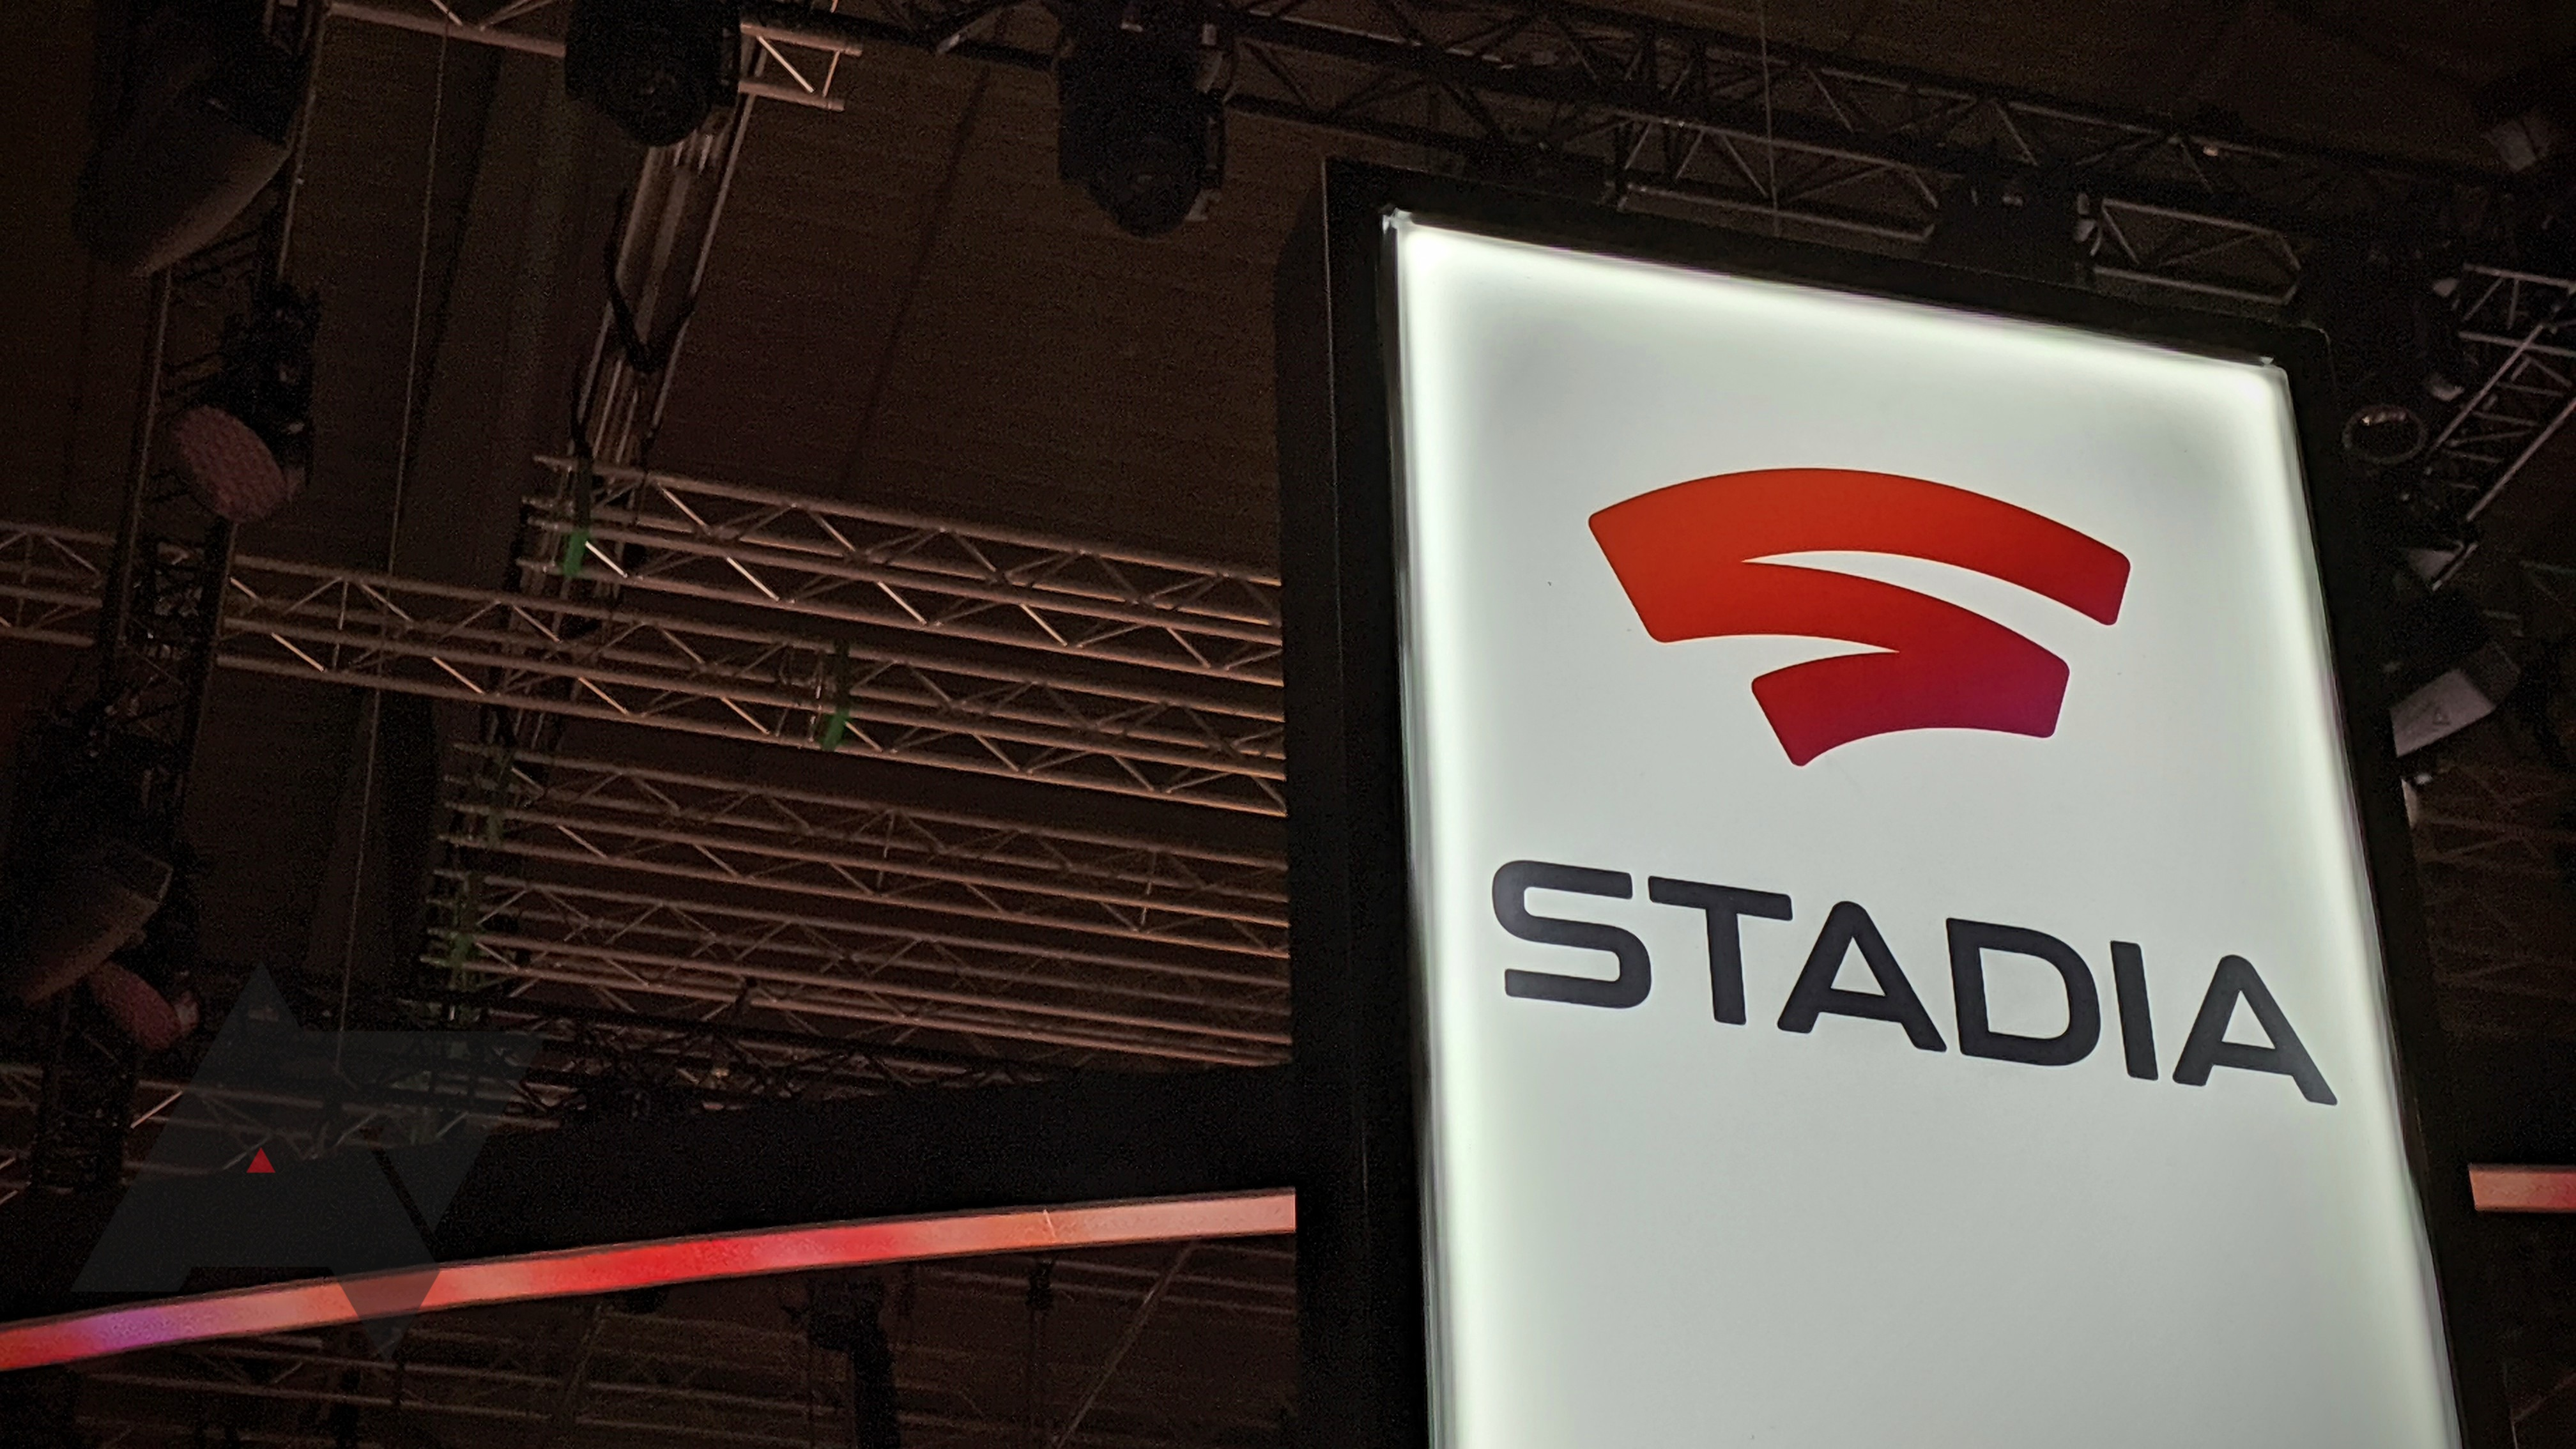 Stadia exec says 400 games are in development for the platform